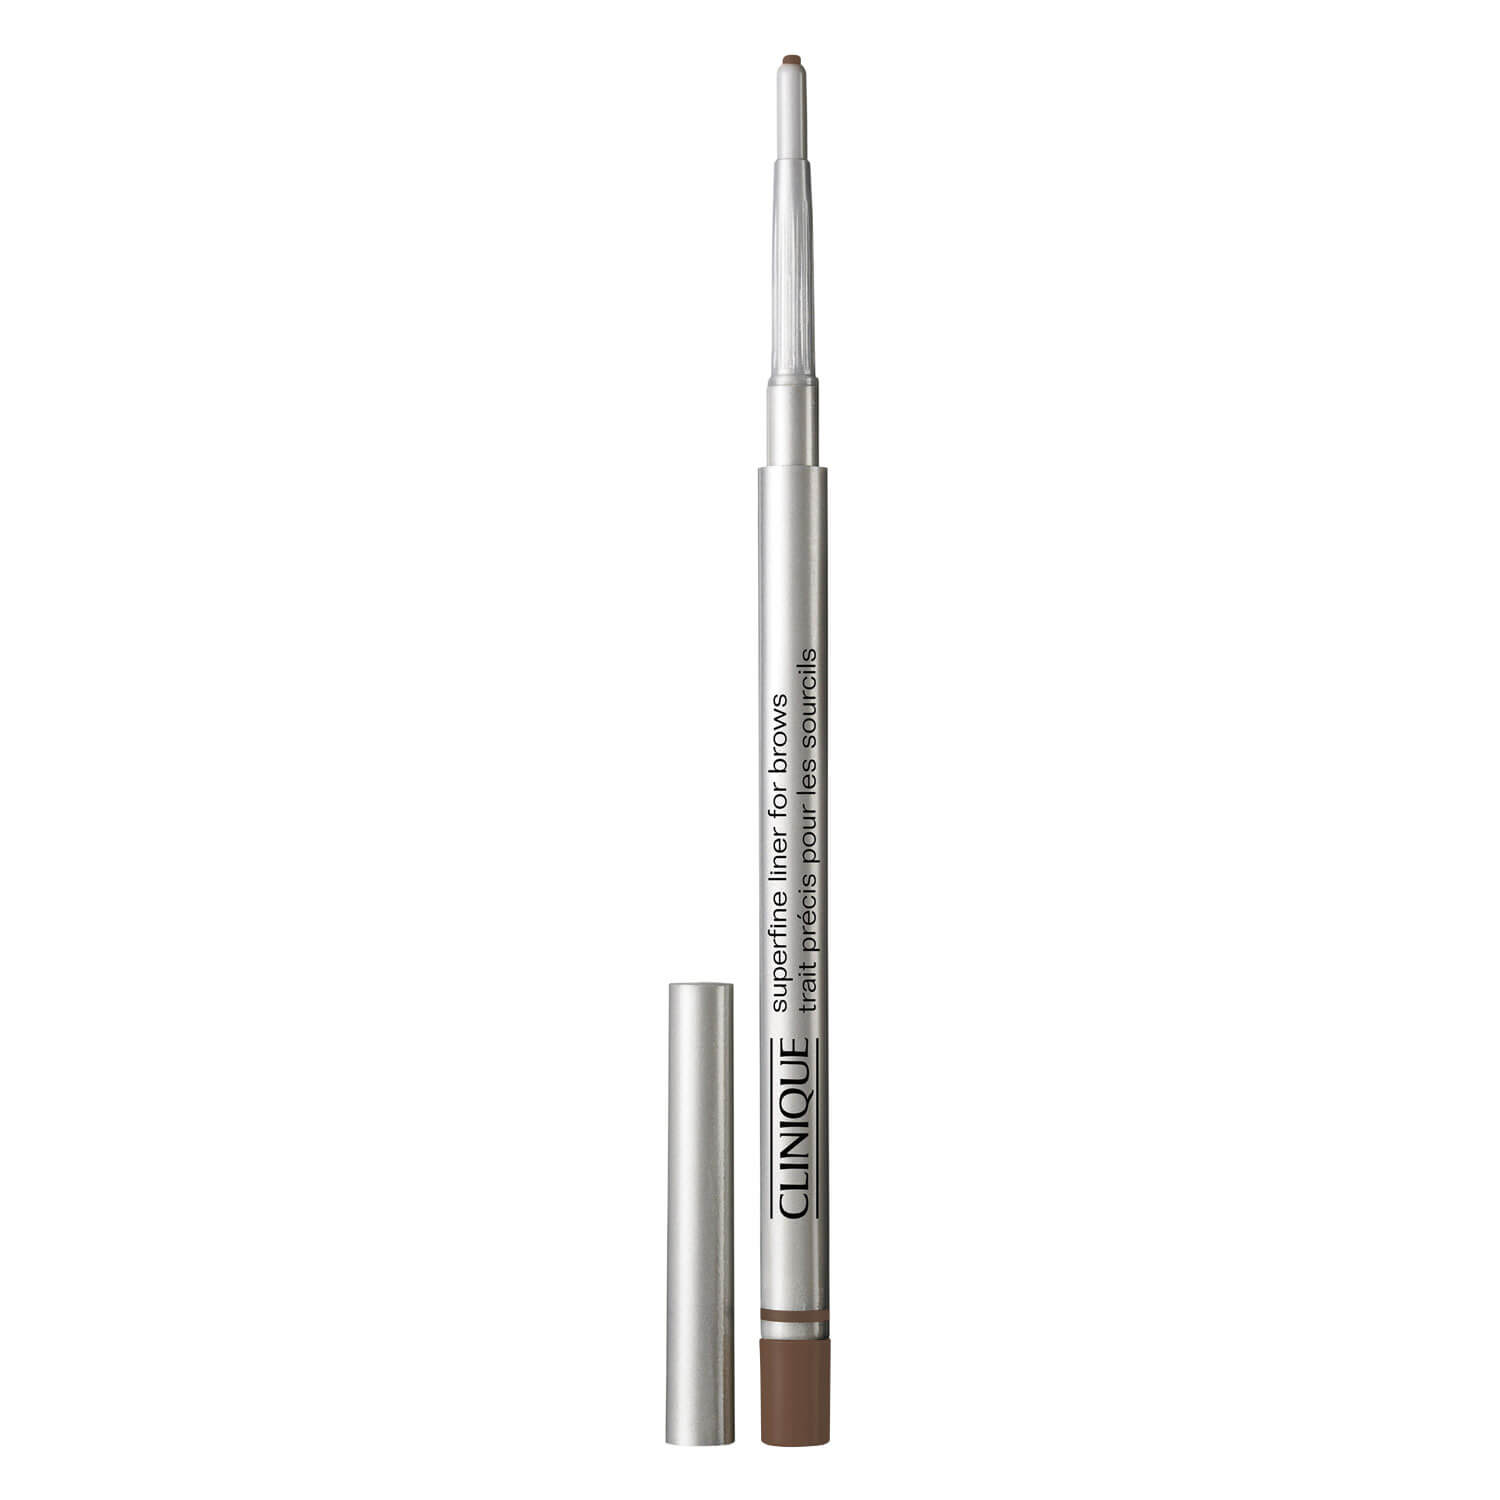 Superfine Liner For Brows - 03 Deep Brown - 0.8g